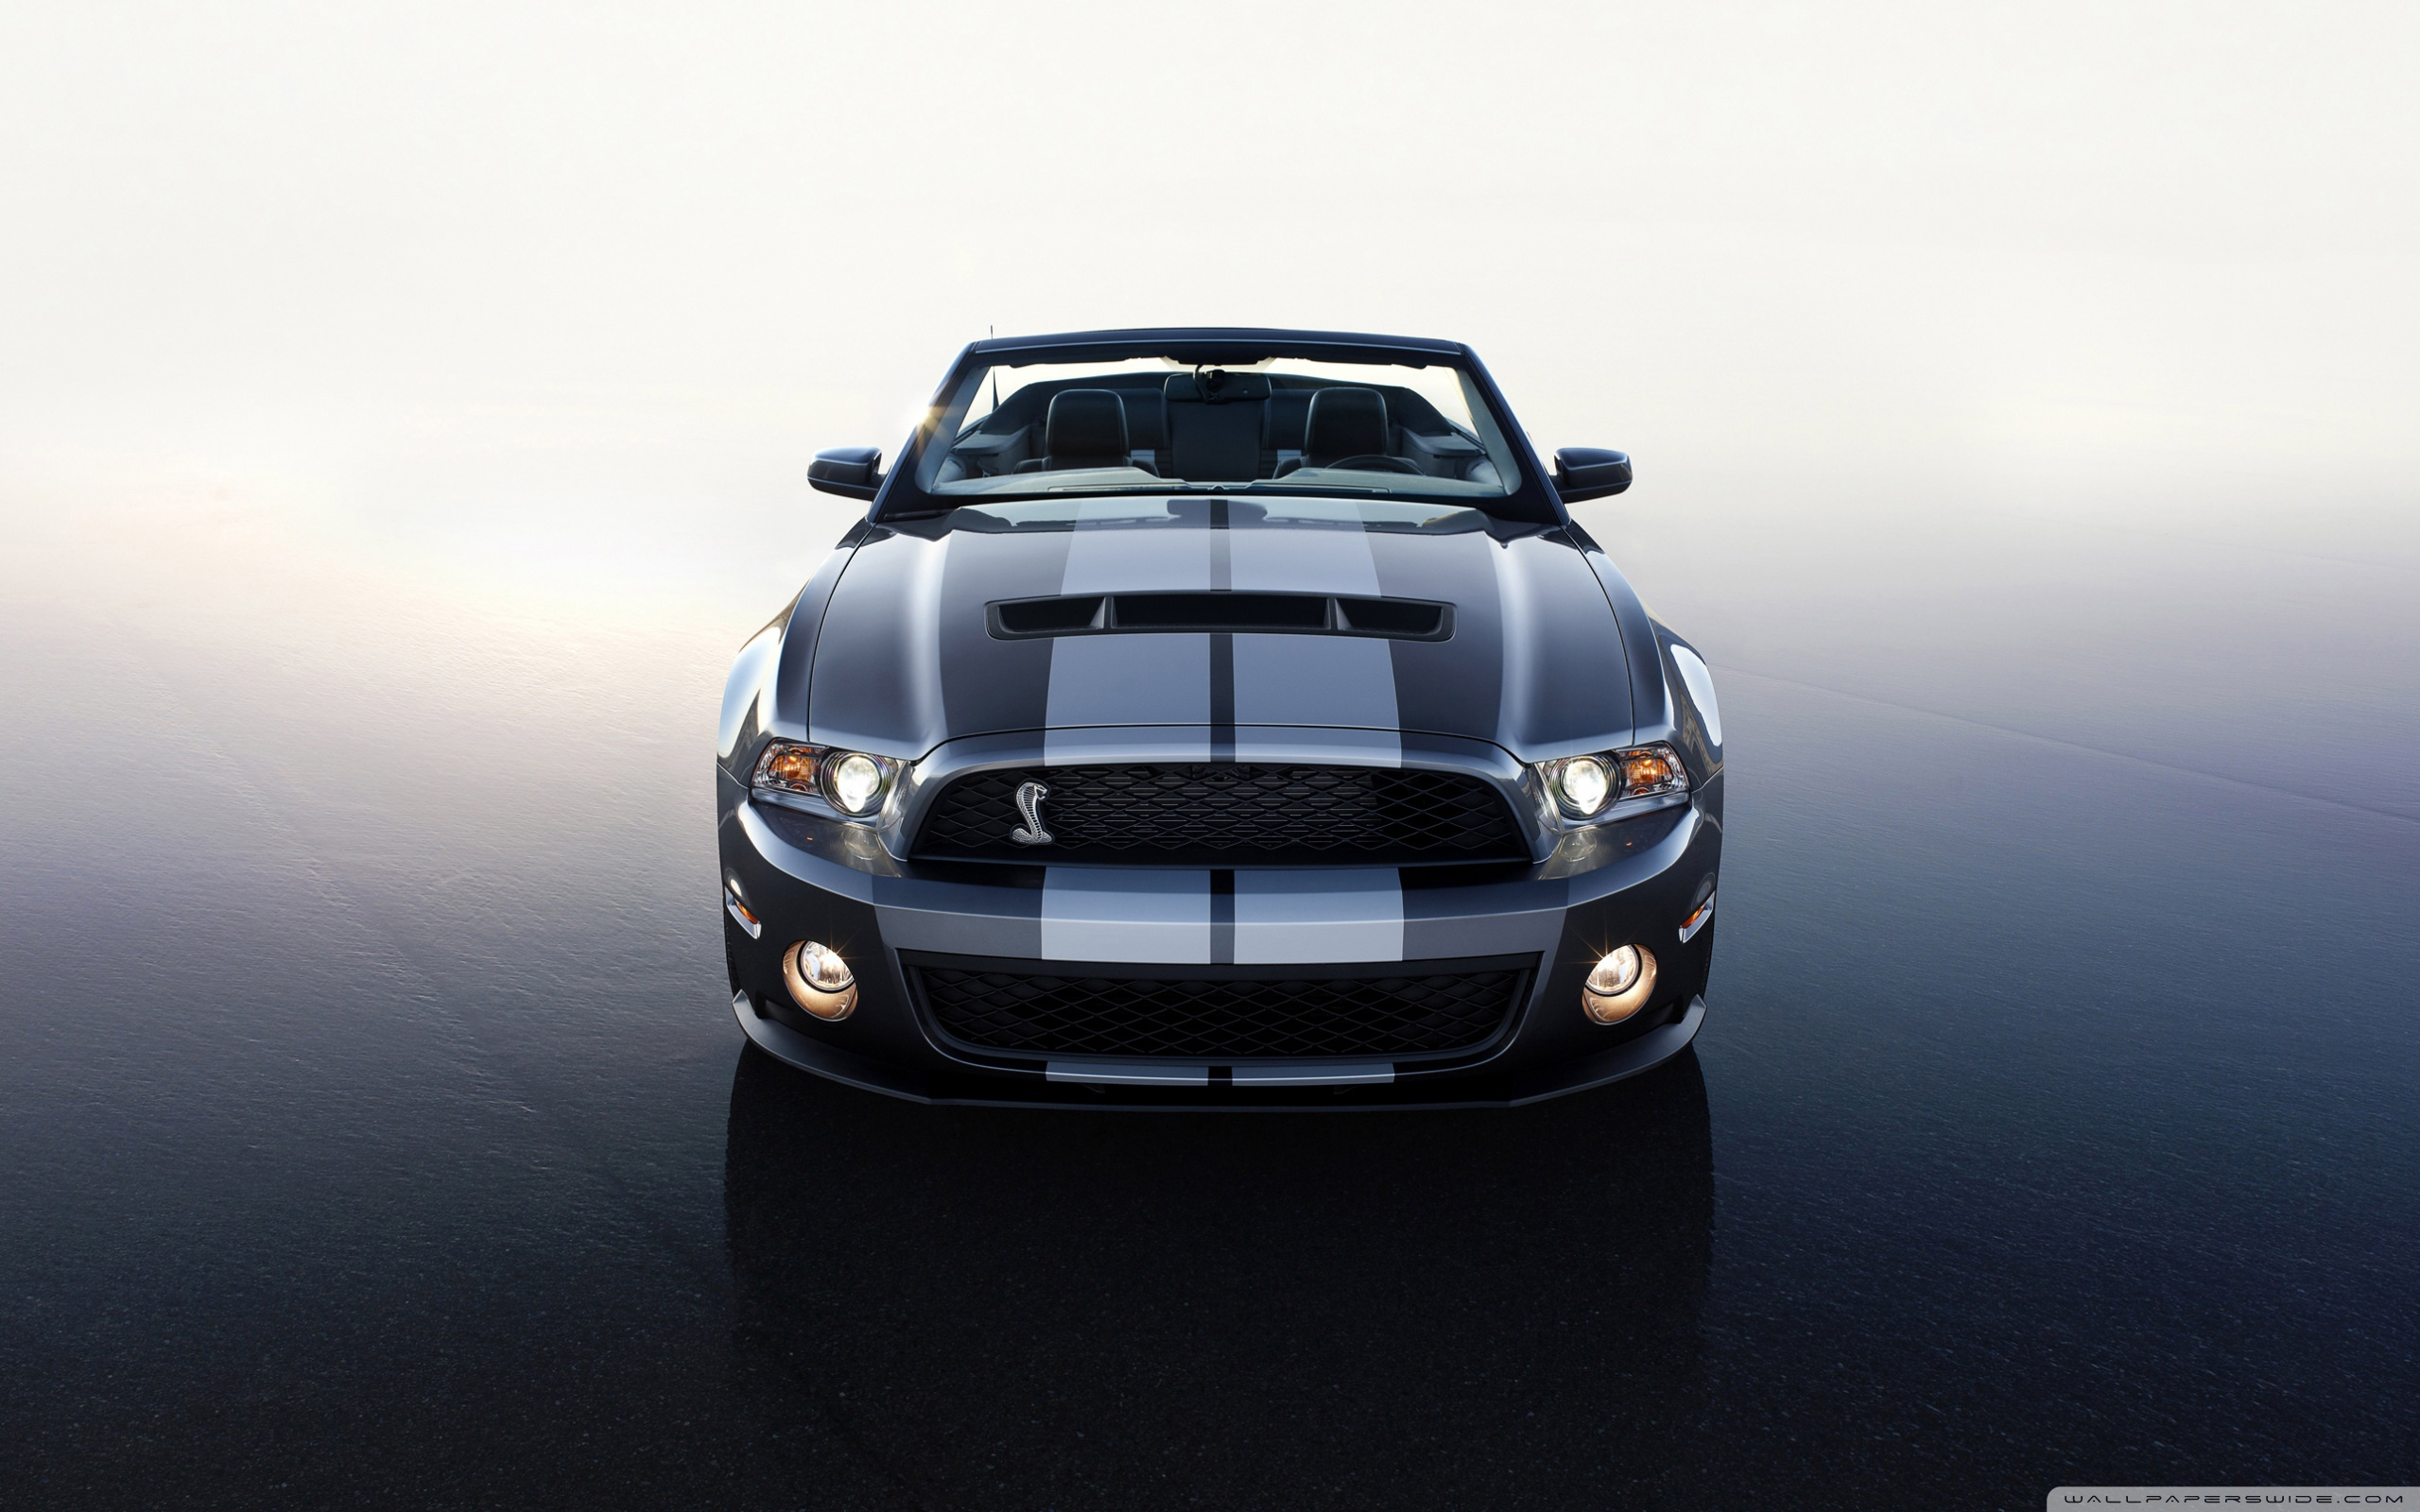 2560x1600 - Ford Convertible Wallpapers 24